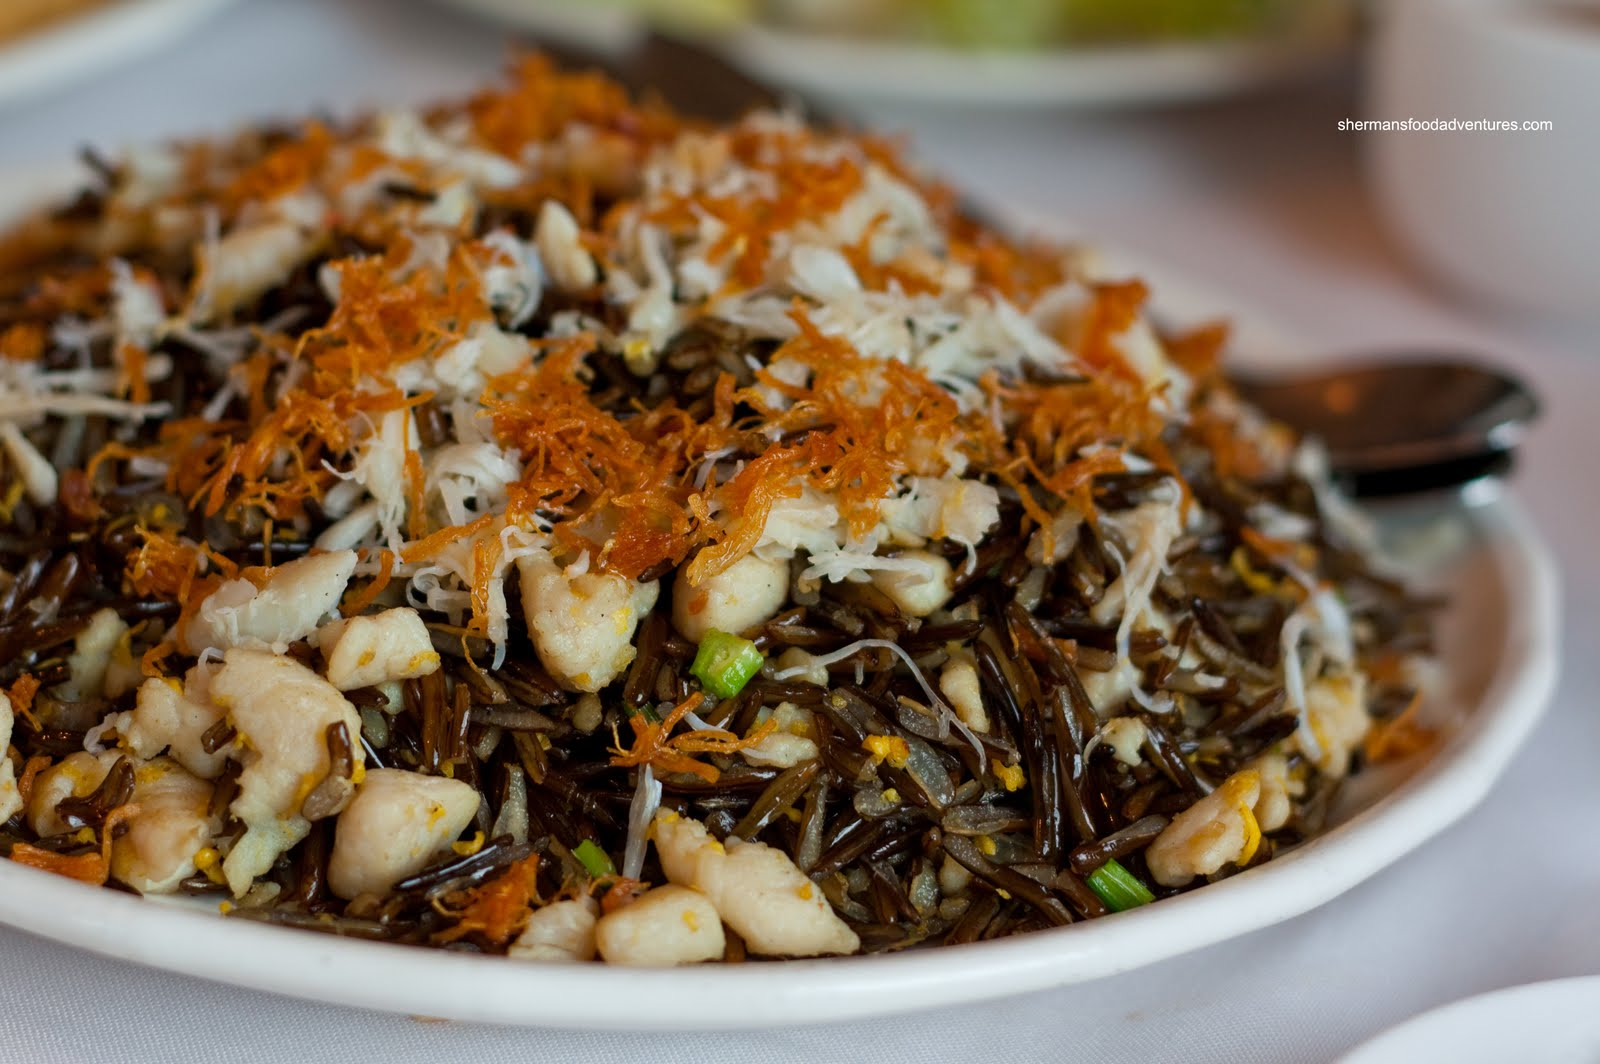 wild rice rather than the standard white rice added into